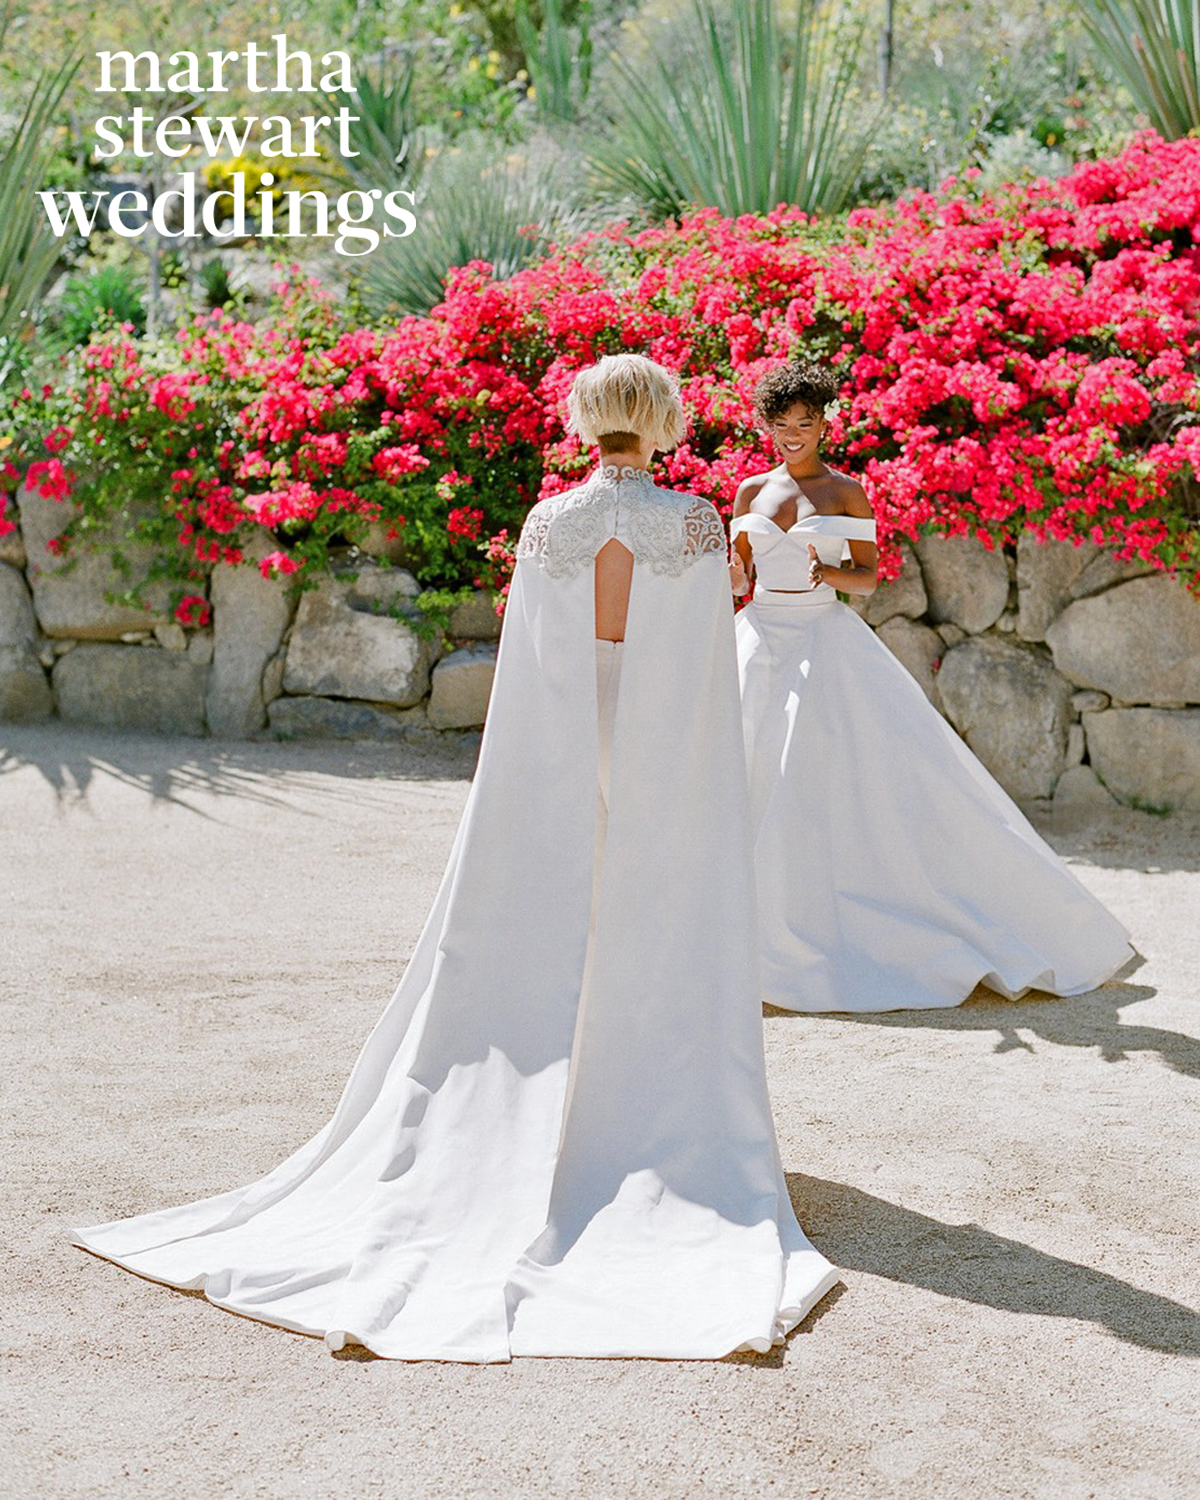 samira wiley lauren morelli wedding first look